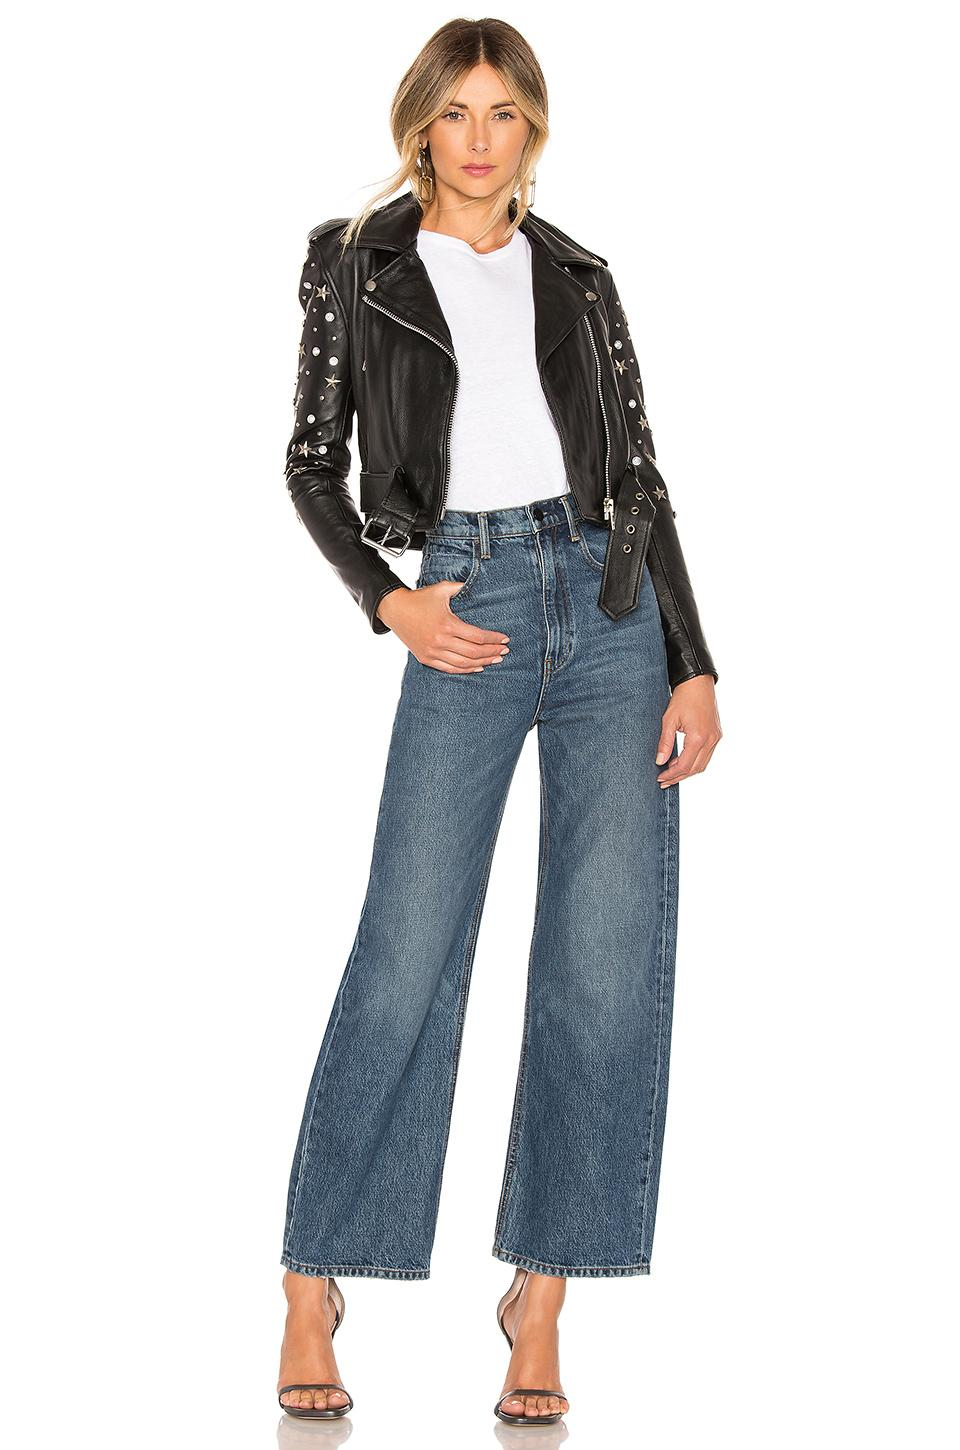 2953c0b889 Urban Outfitters X Revolve Star Studded Mercy Cropped Jacket in ...